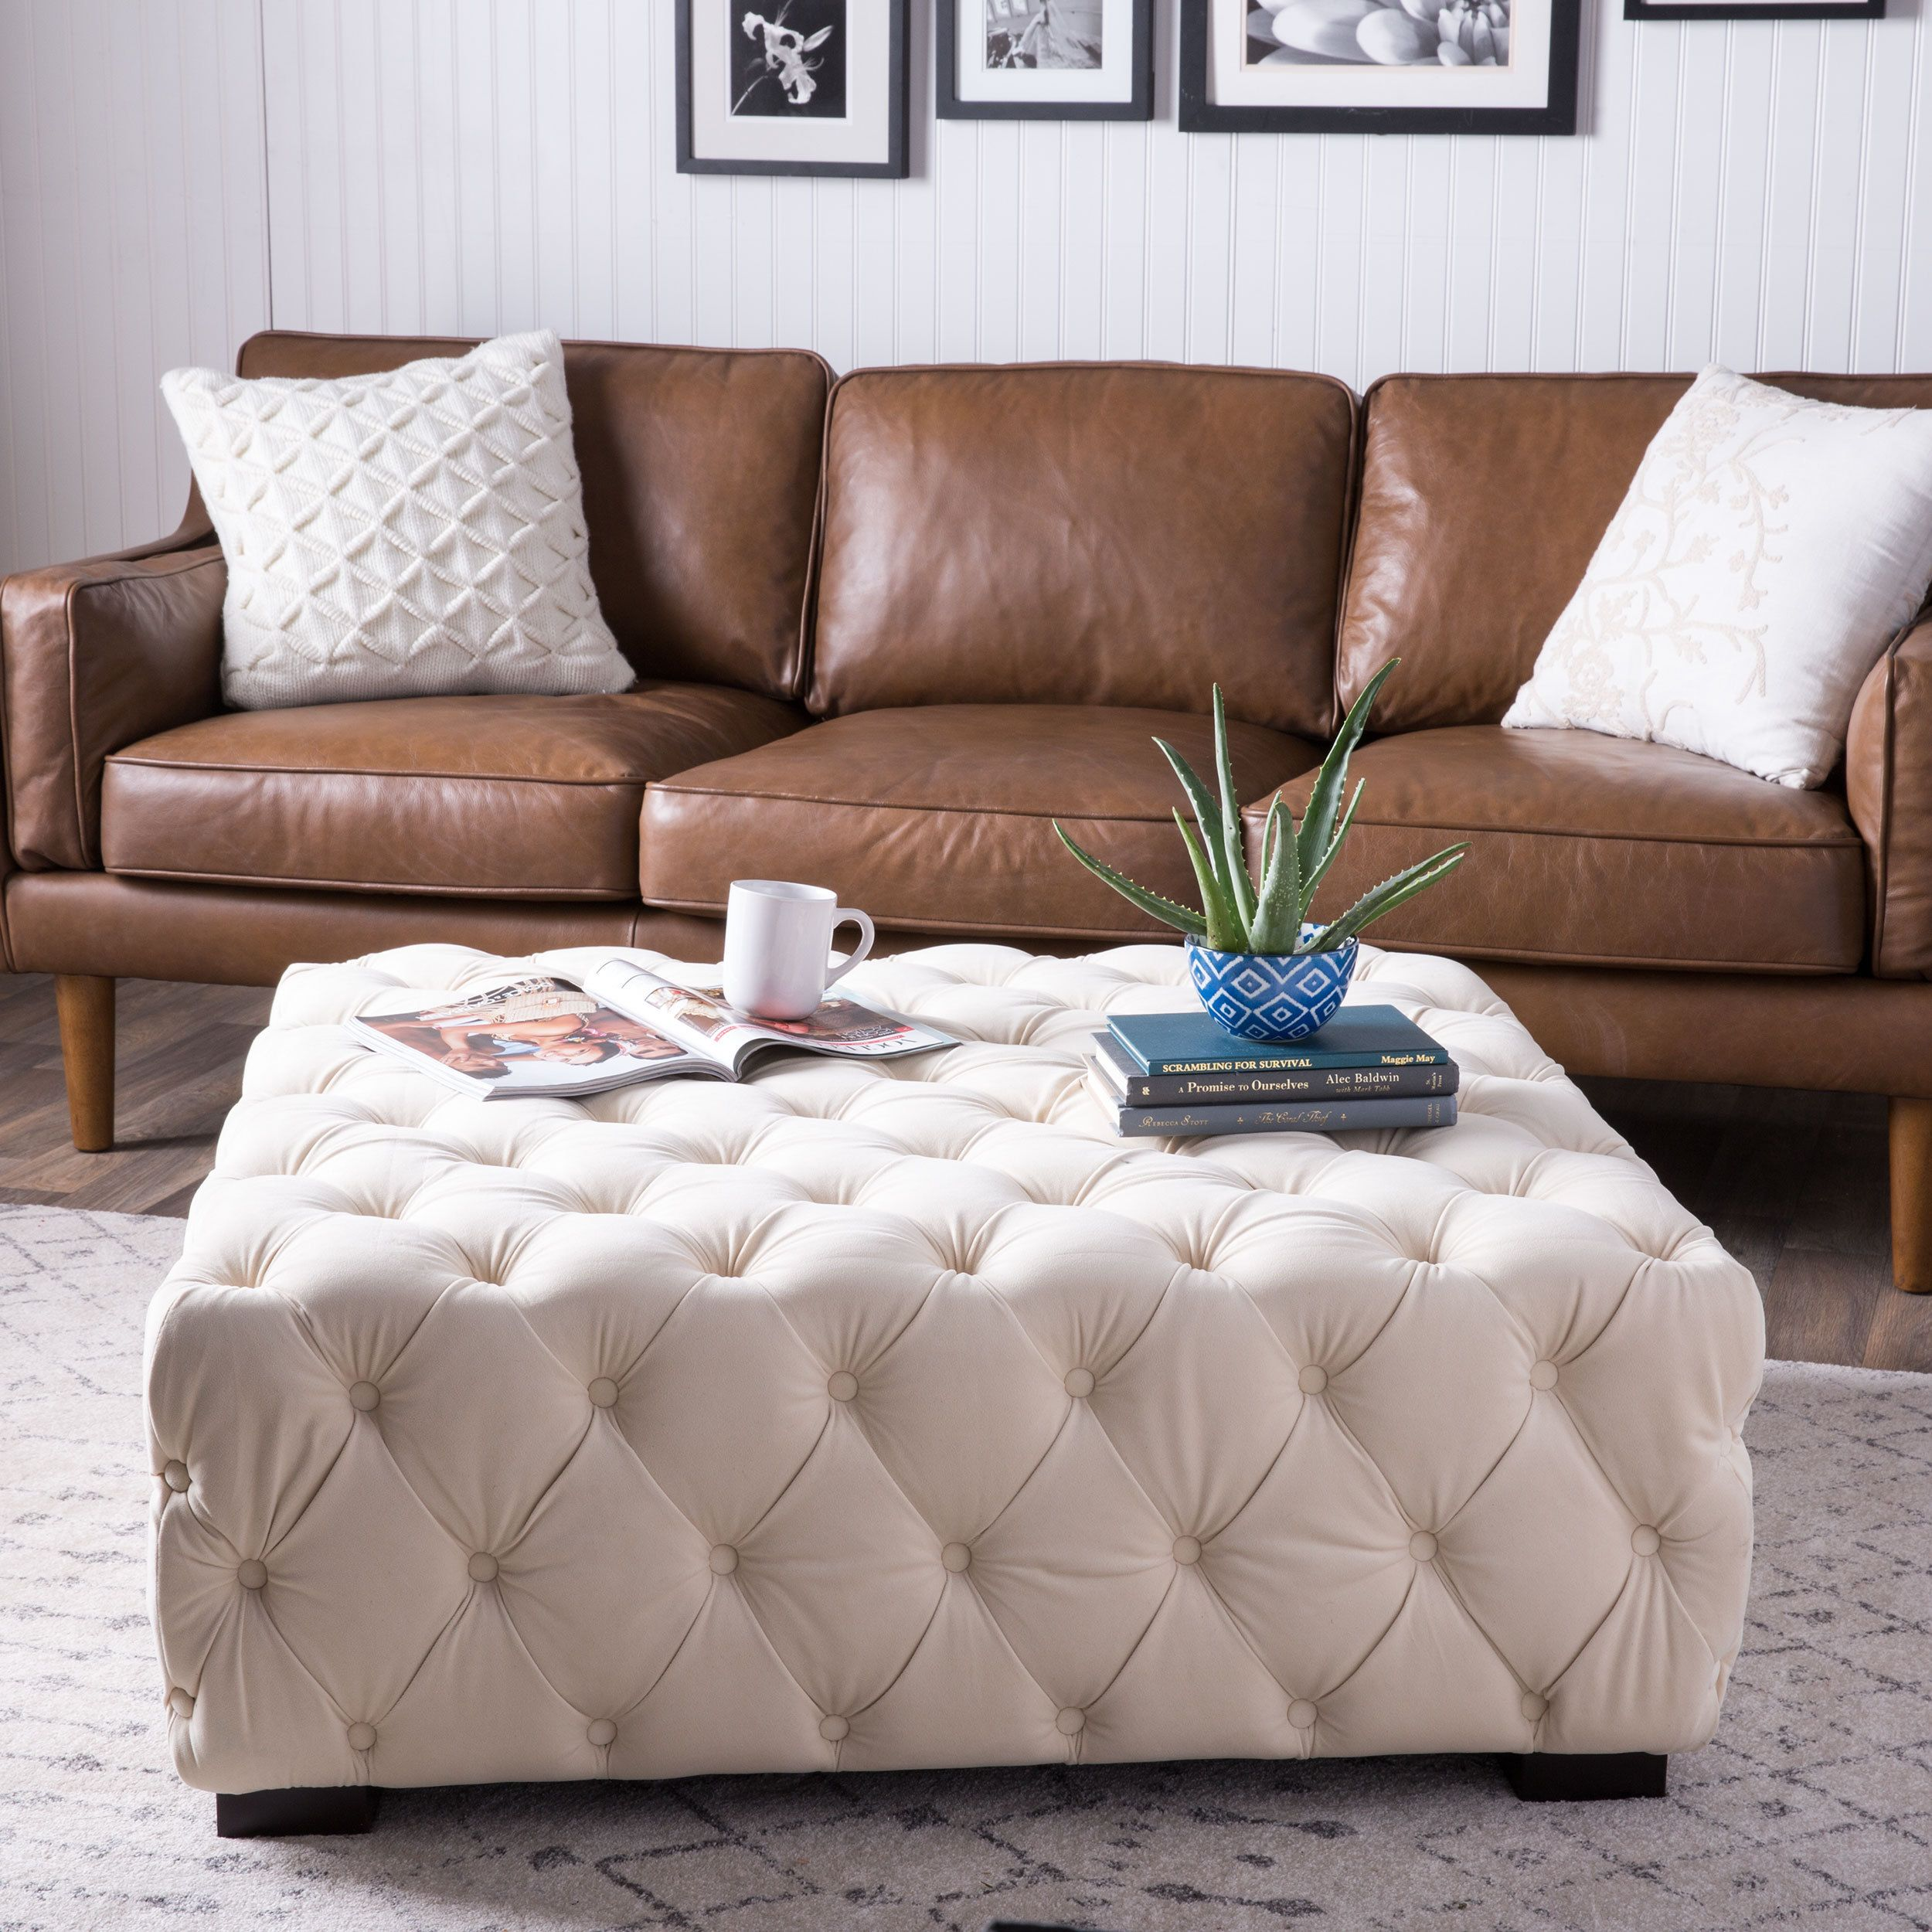 Online Shopping Bedding Furniture Electronics Jewelry Clothing More Tufted Ottoman Ottoman In Living Room